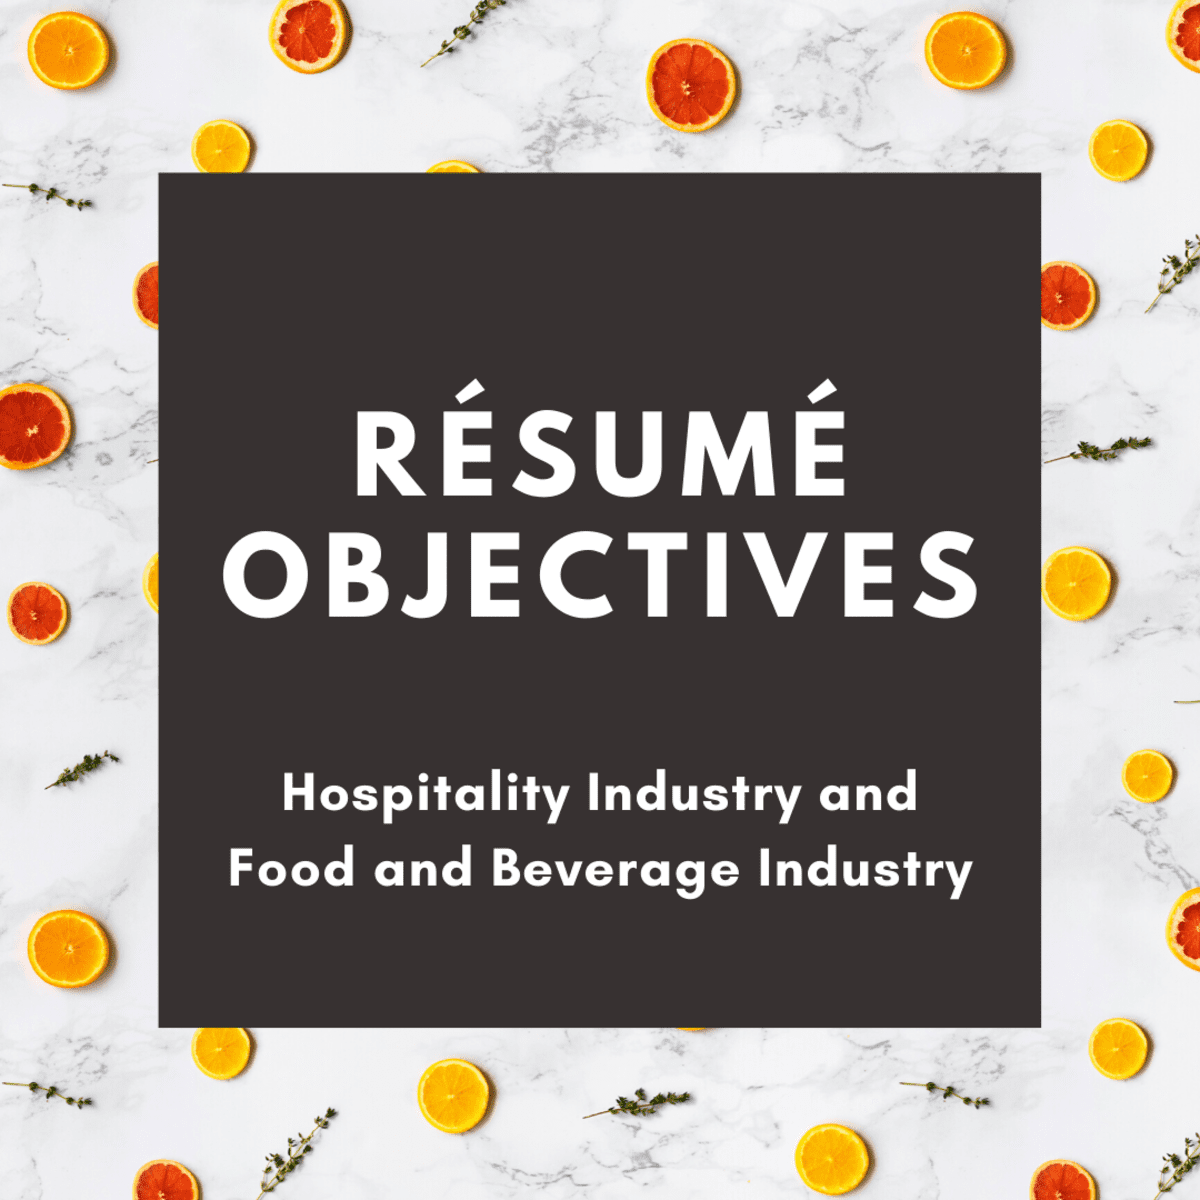 Sample Objectives For A Resume For The Hospitality Industry Toughnickel